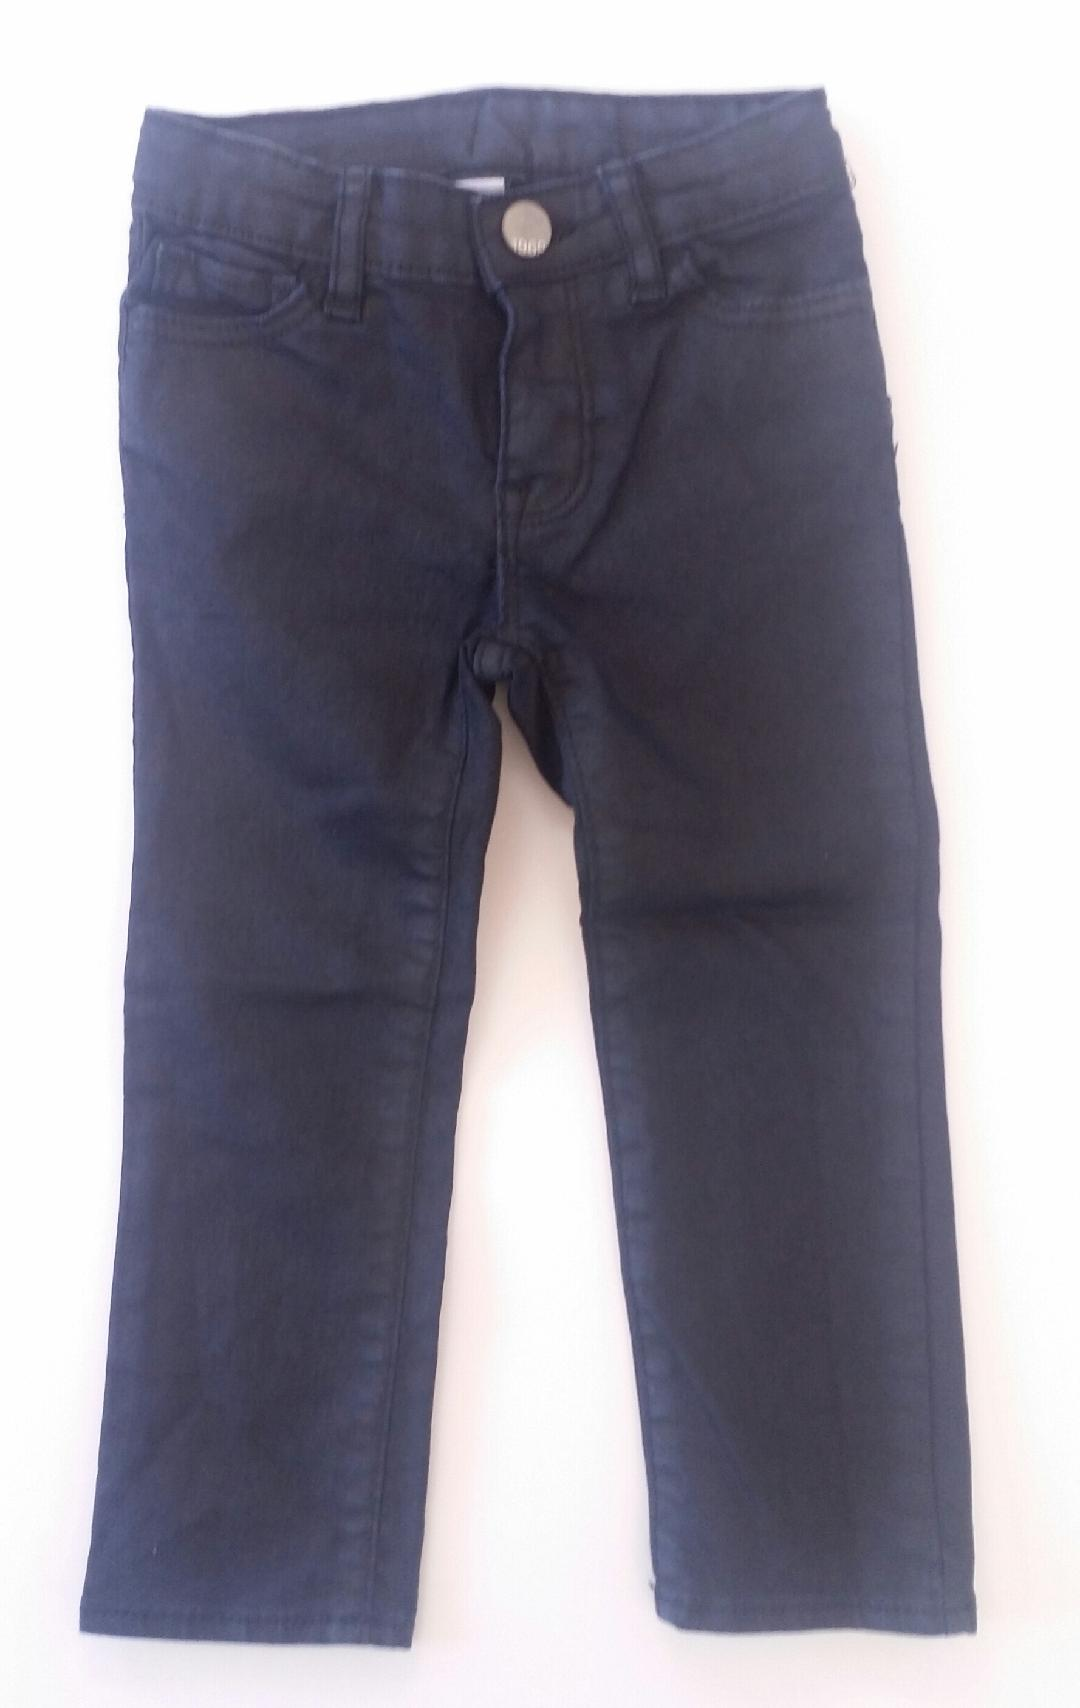 Gap-2-YEARS-Black-Jeans_2156237A.jpg